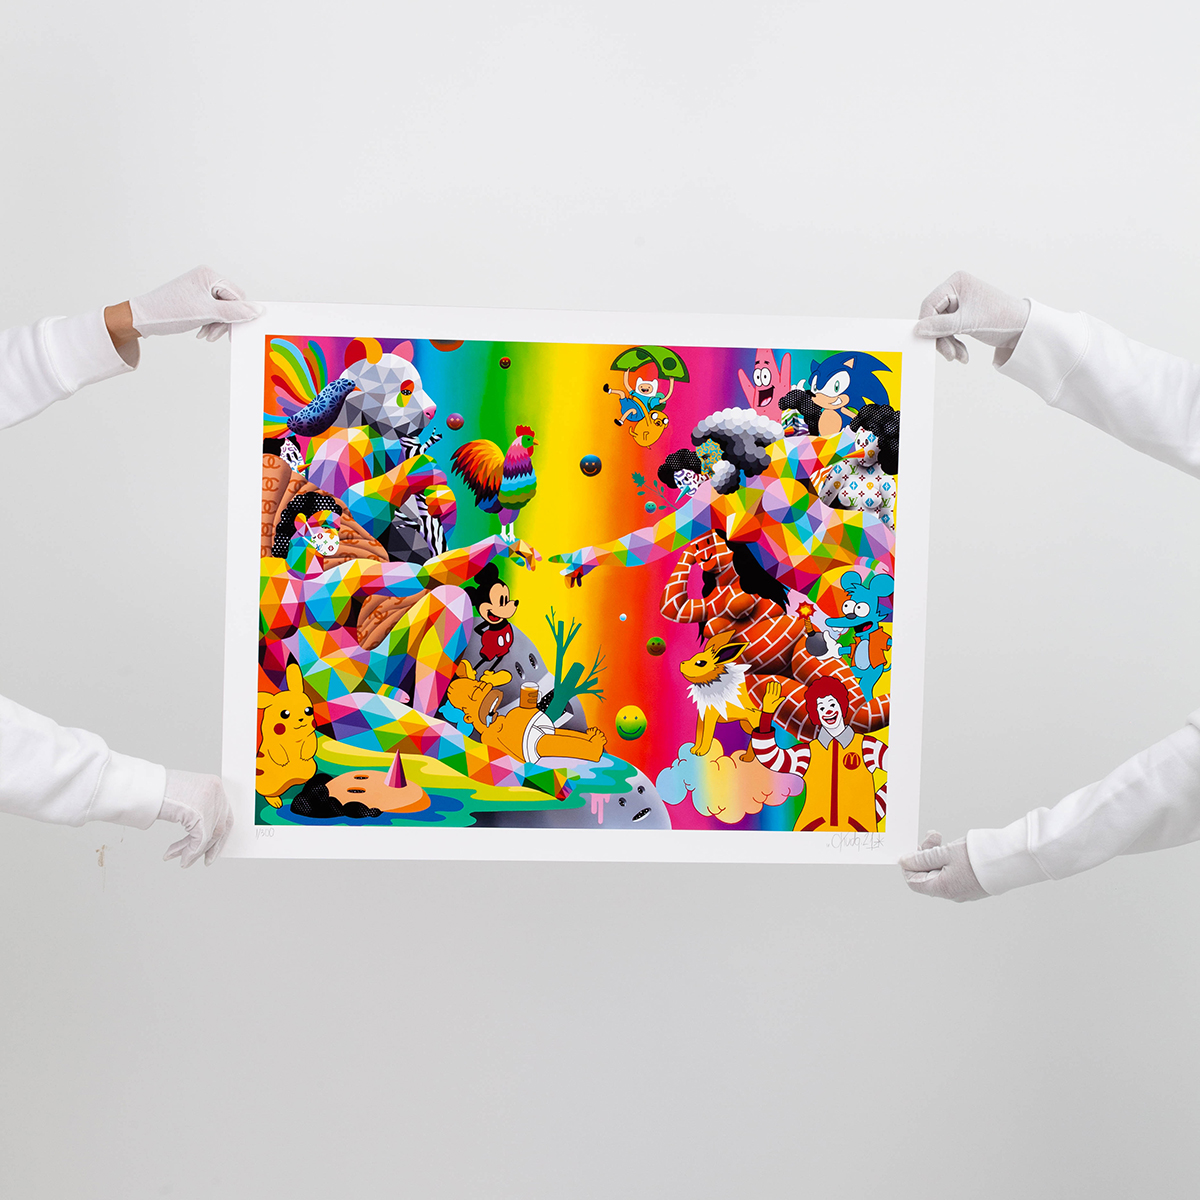 Print Okuda San Miguel Living into 2 worlds at once